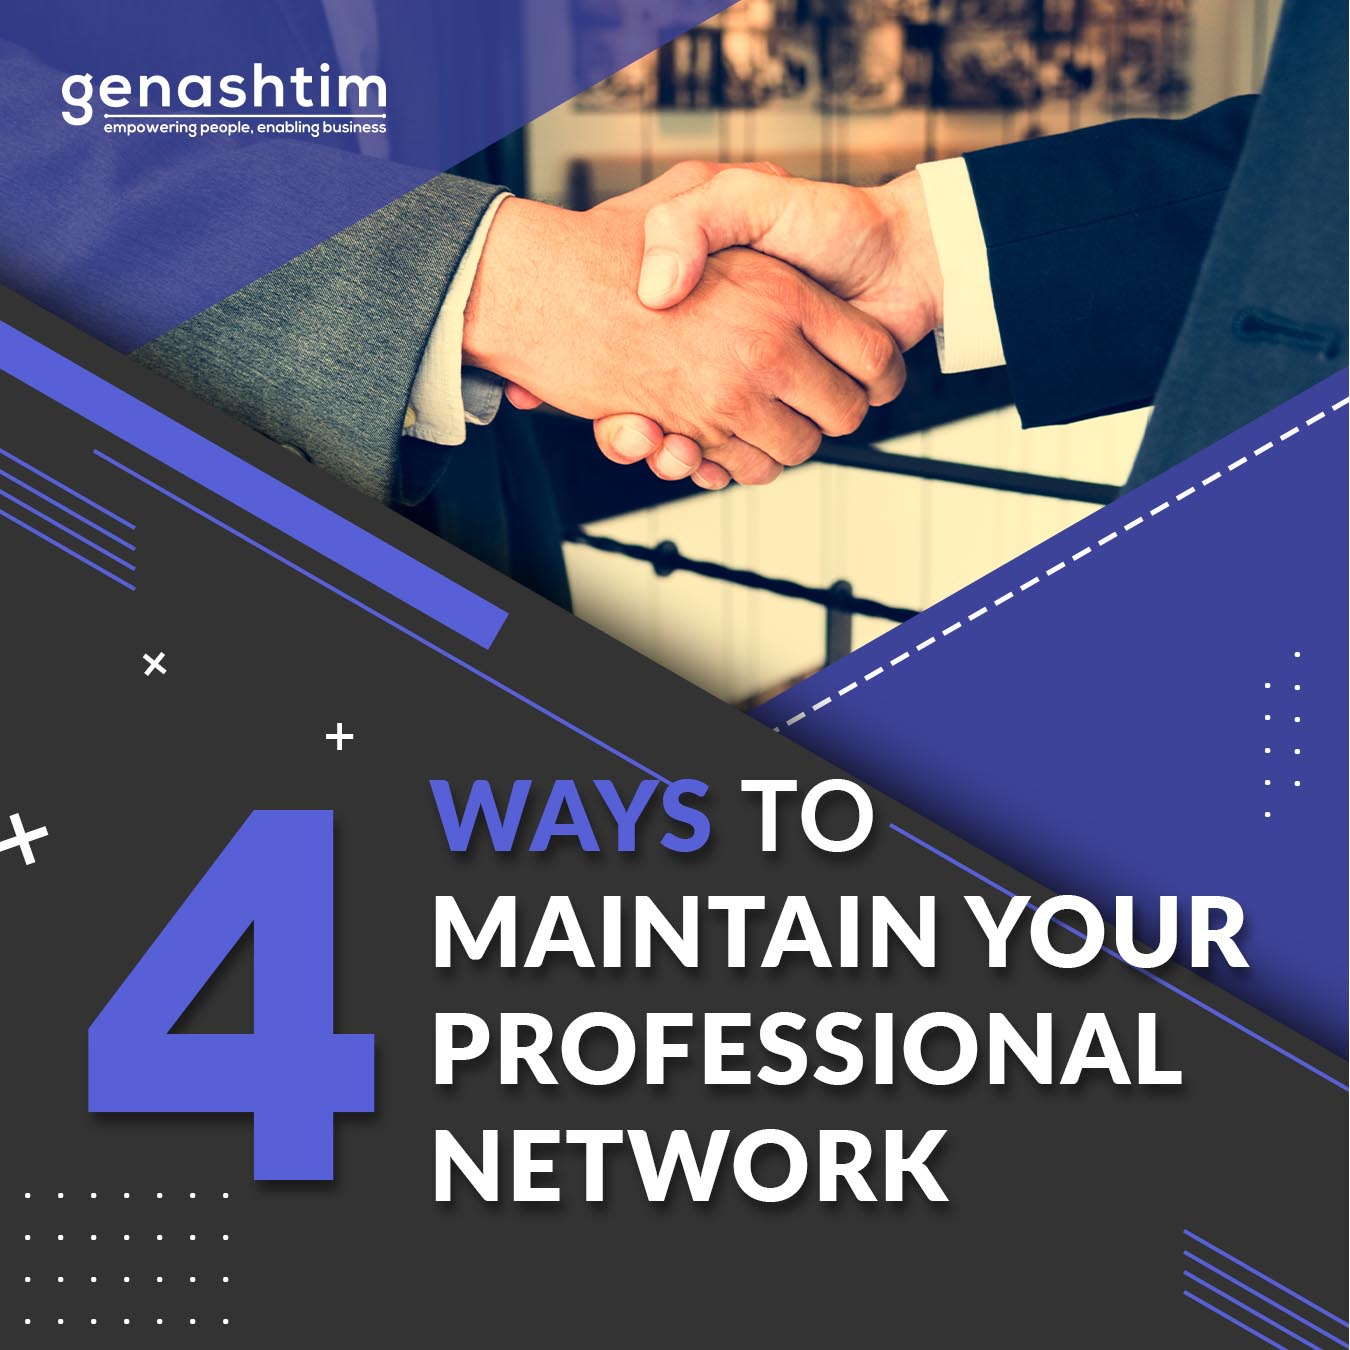 ways to maintain your professionalnetwork